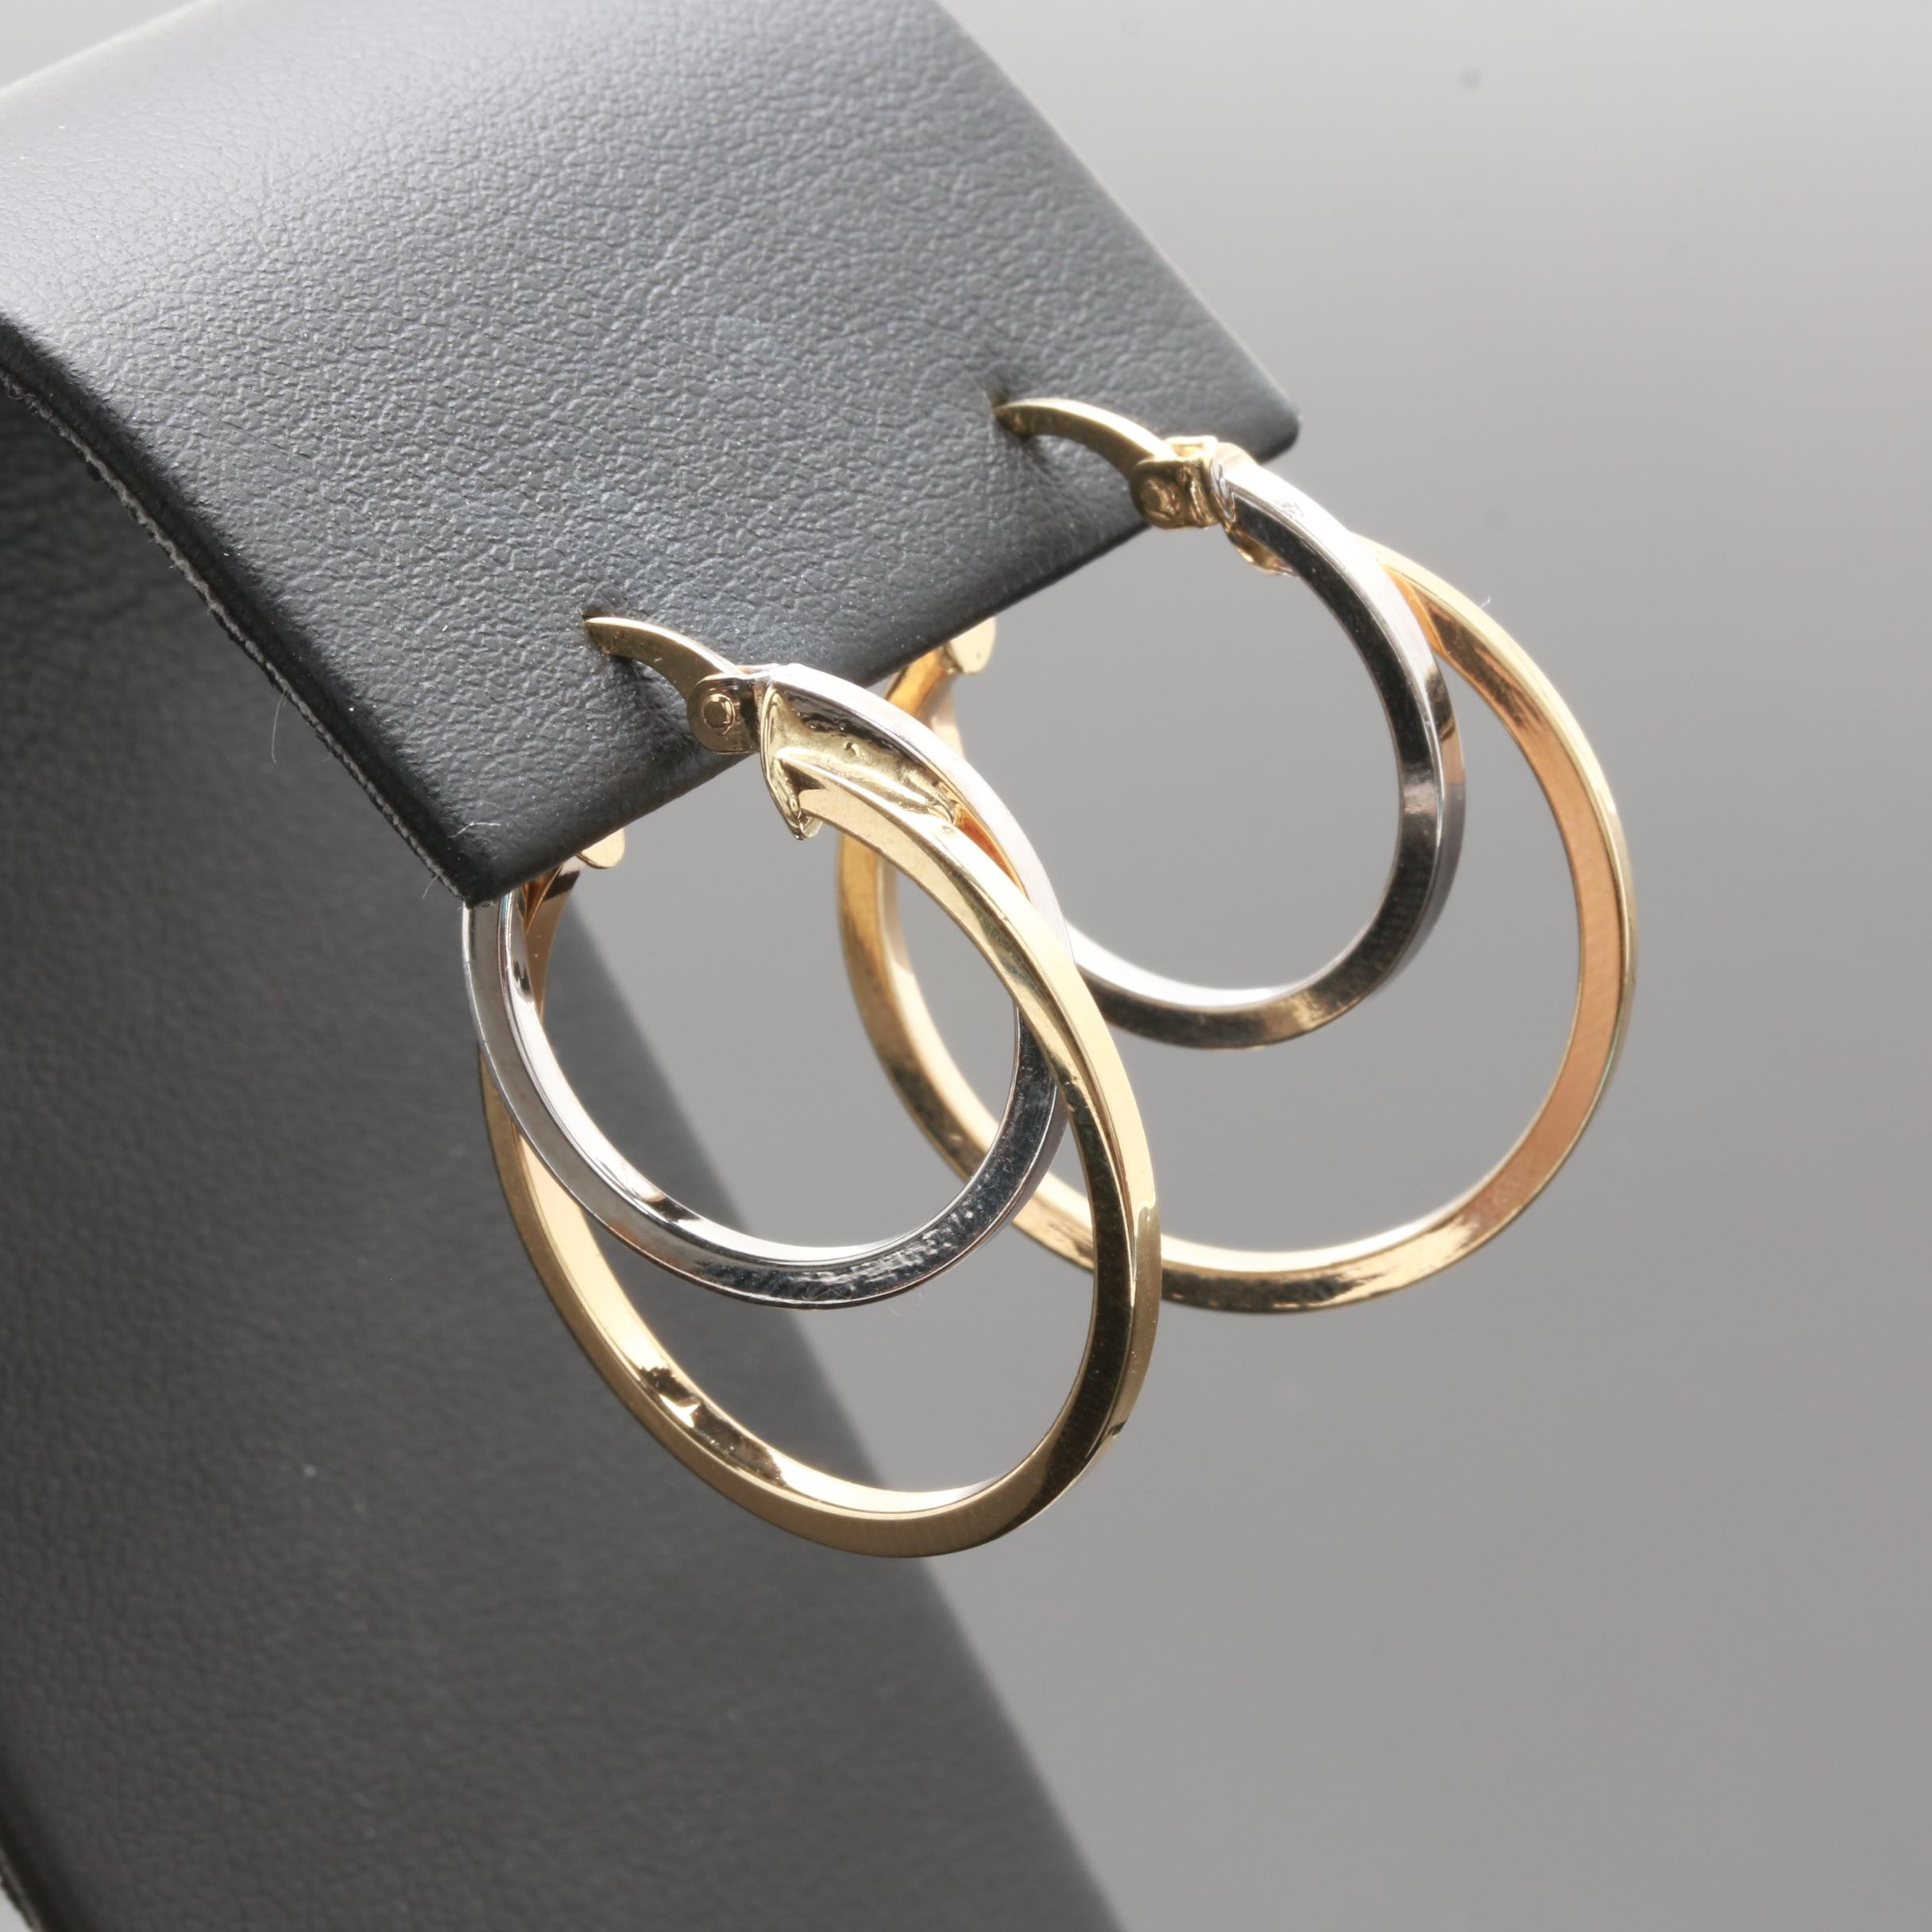 14K Yellow and White Gold Double Hoop Earrings